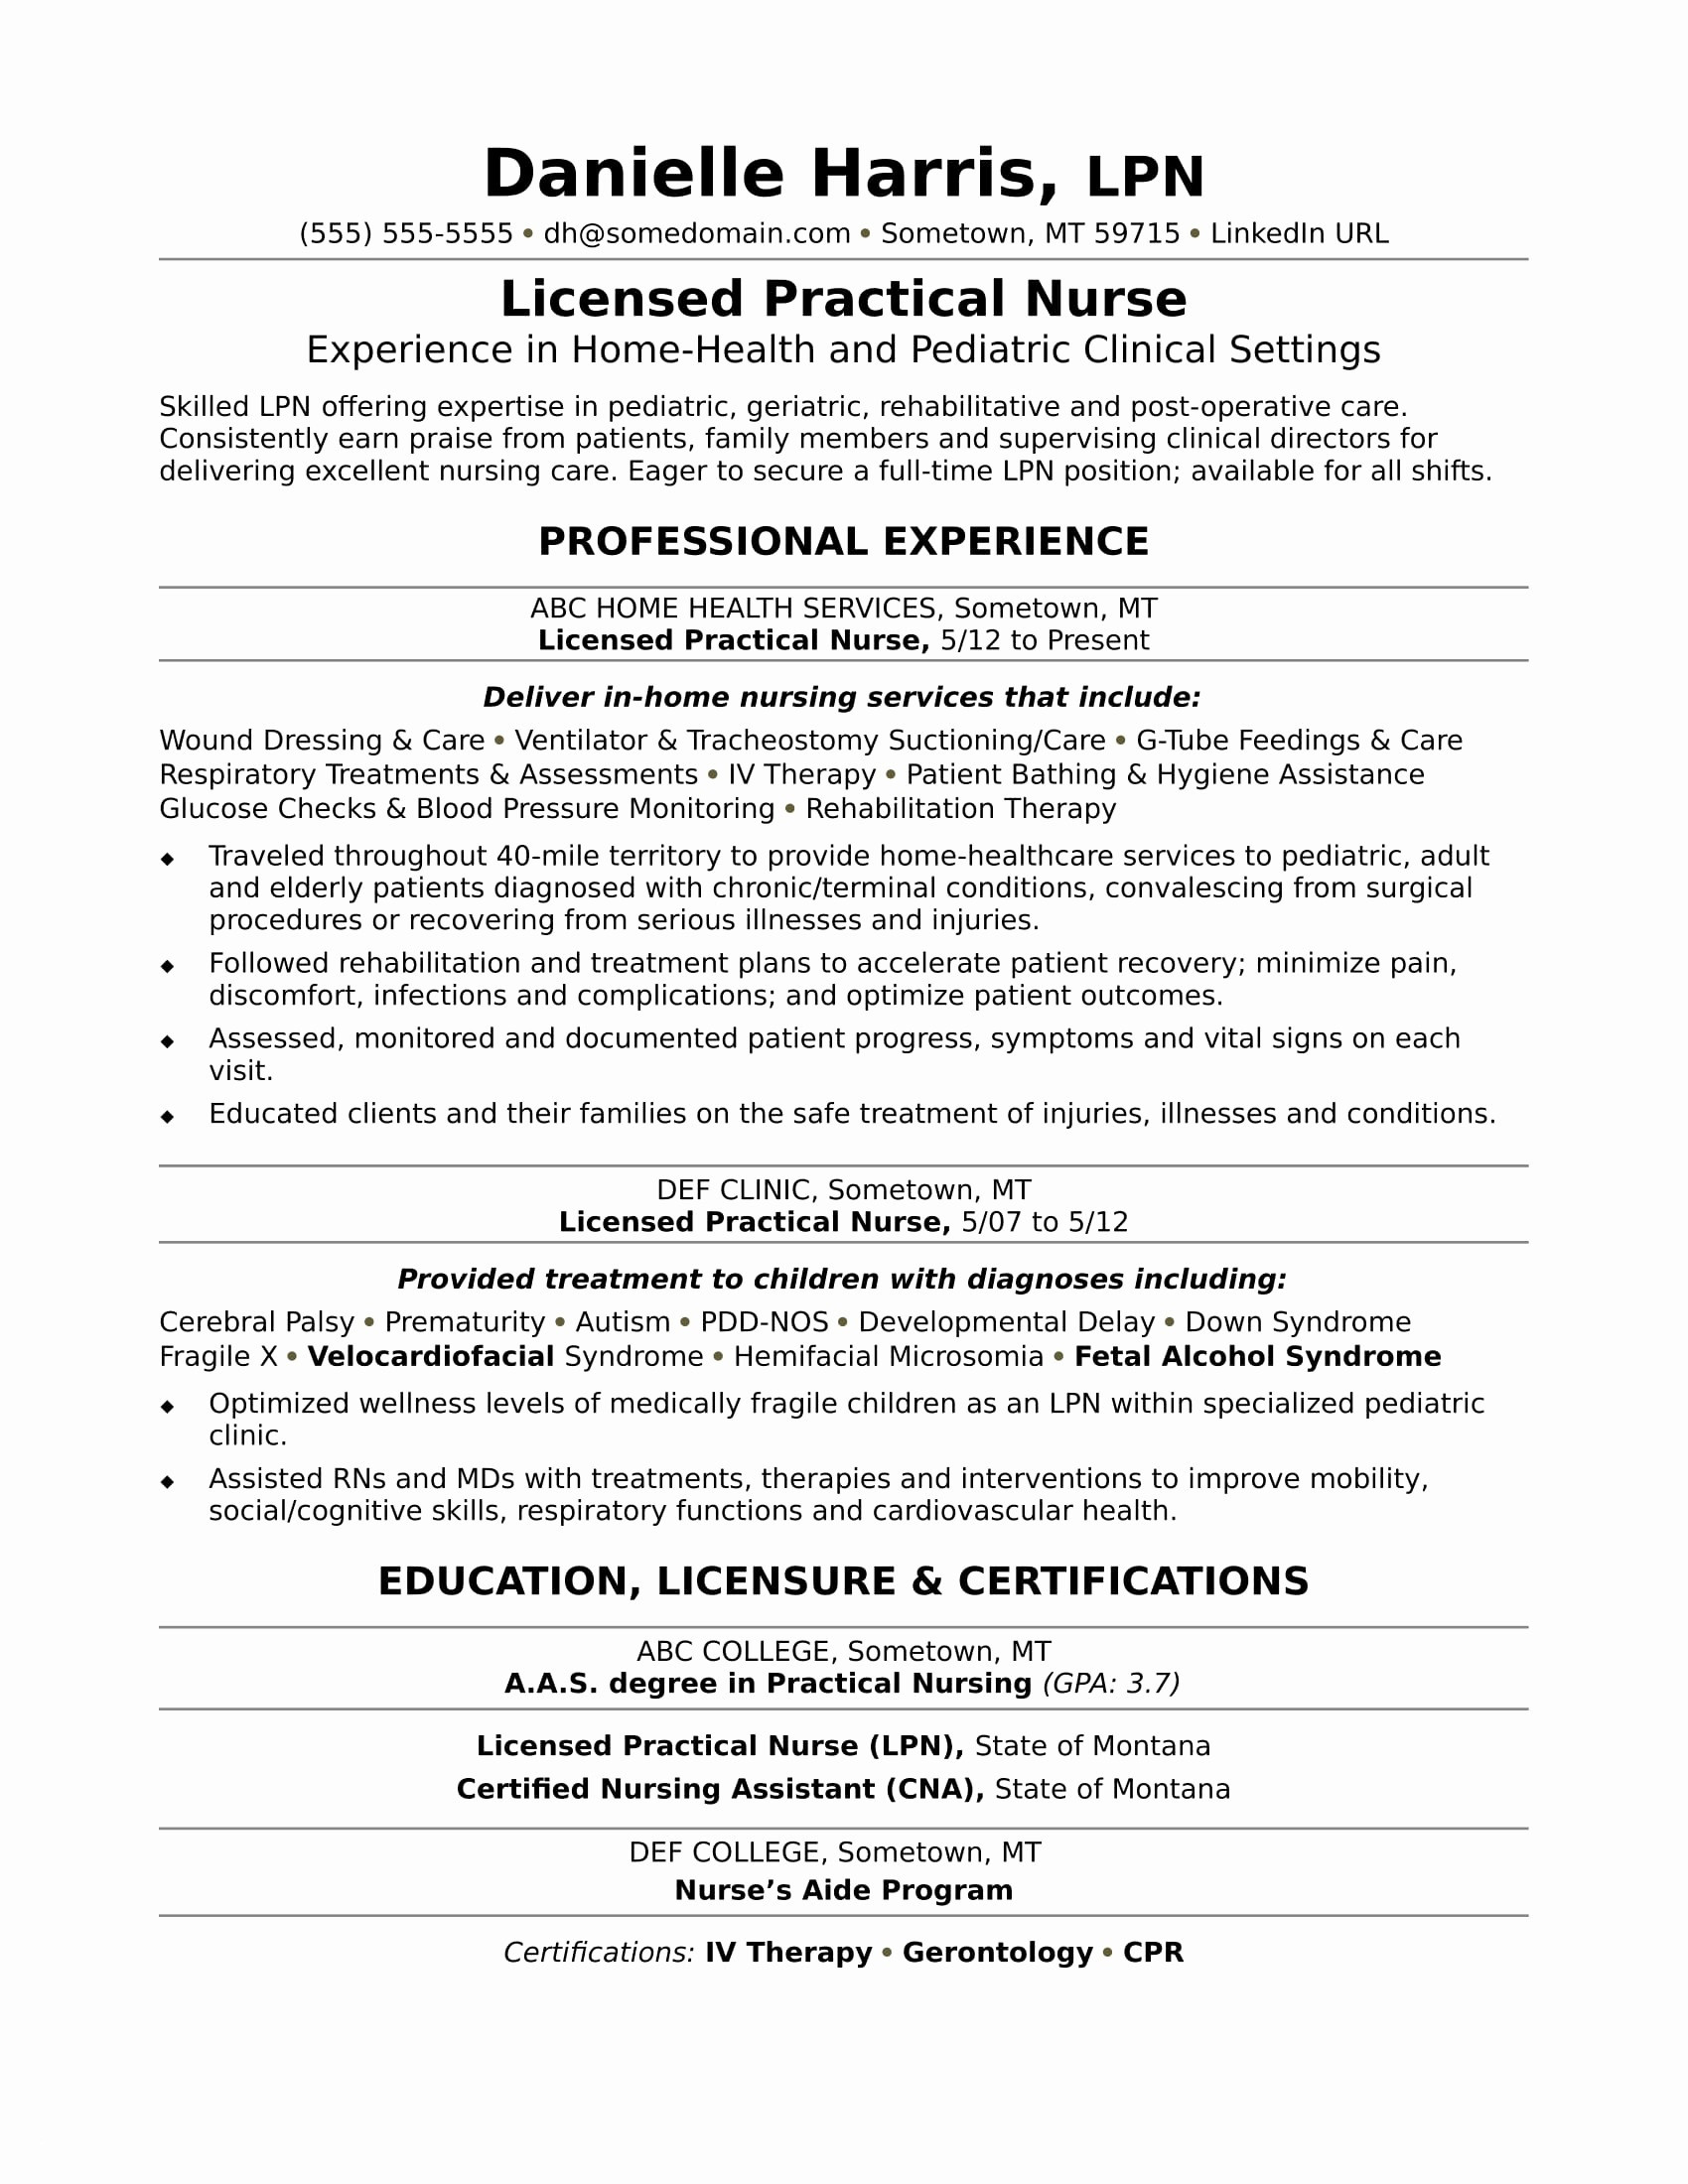 occupational therapy resume template example-Respiratory Therapist Job Description Resume New Nursing Resume Unique New Nurse Resume Awesome Nurse Resume 0d 5-l